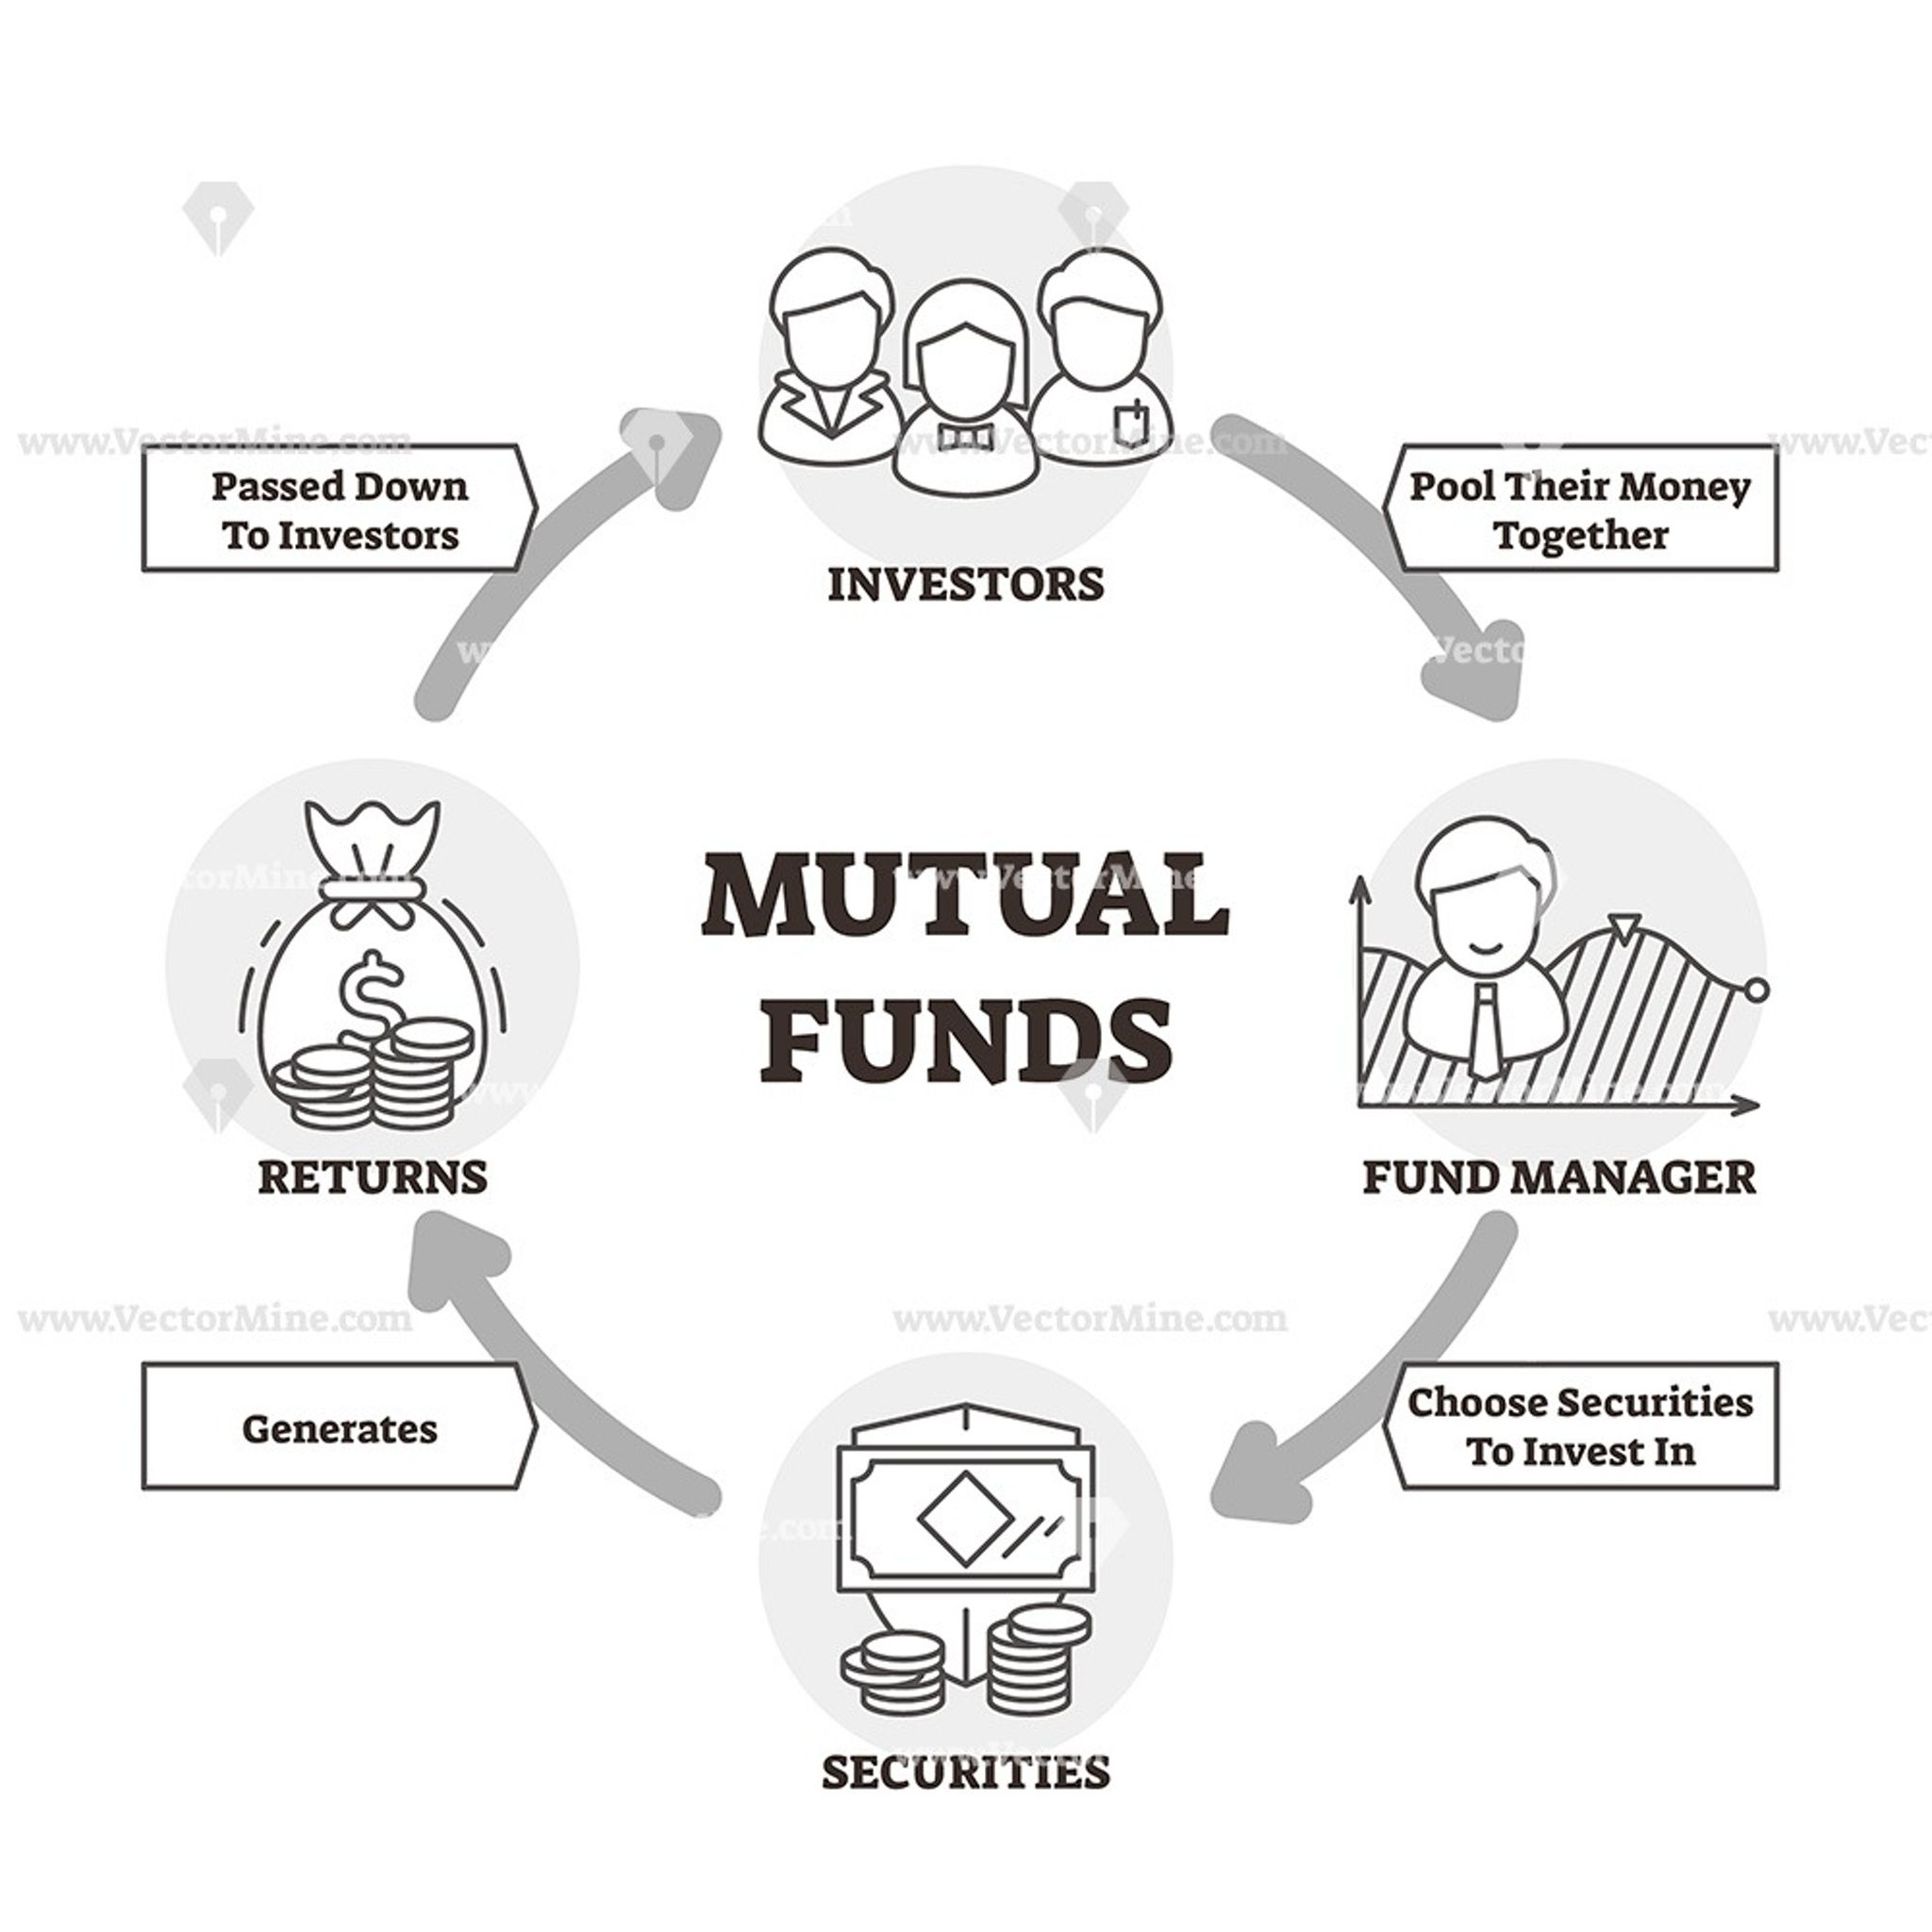 Mutual funds outline vector illustration icons diagram